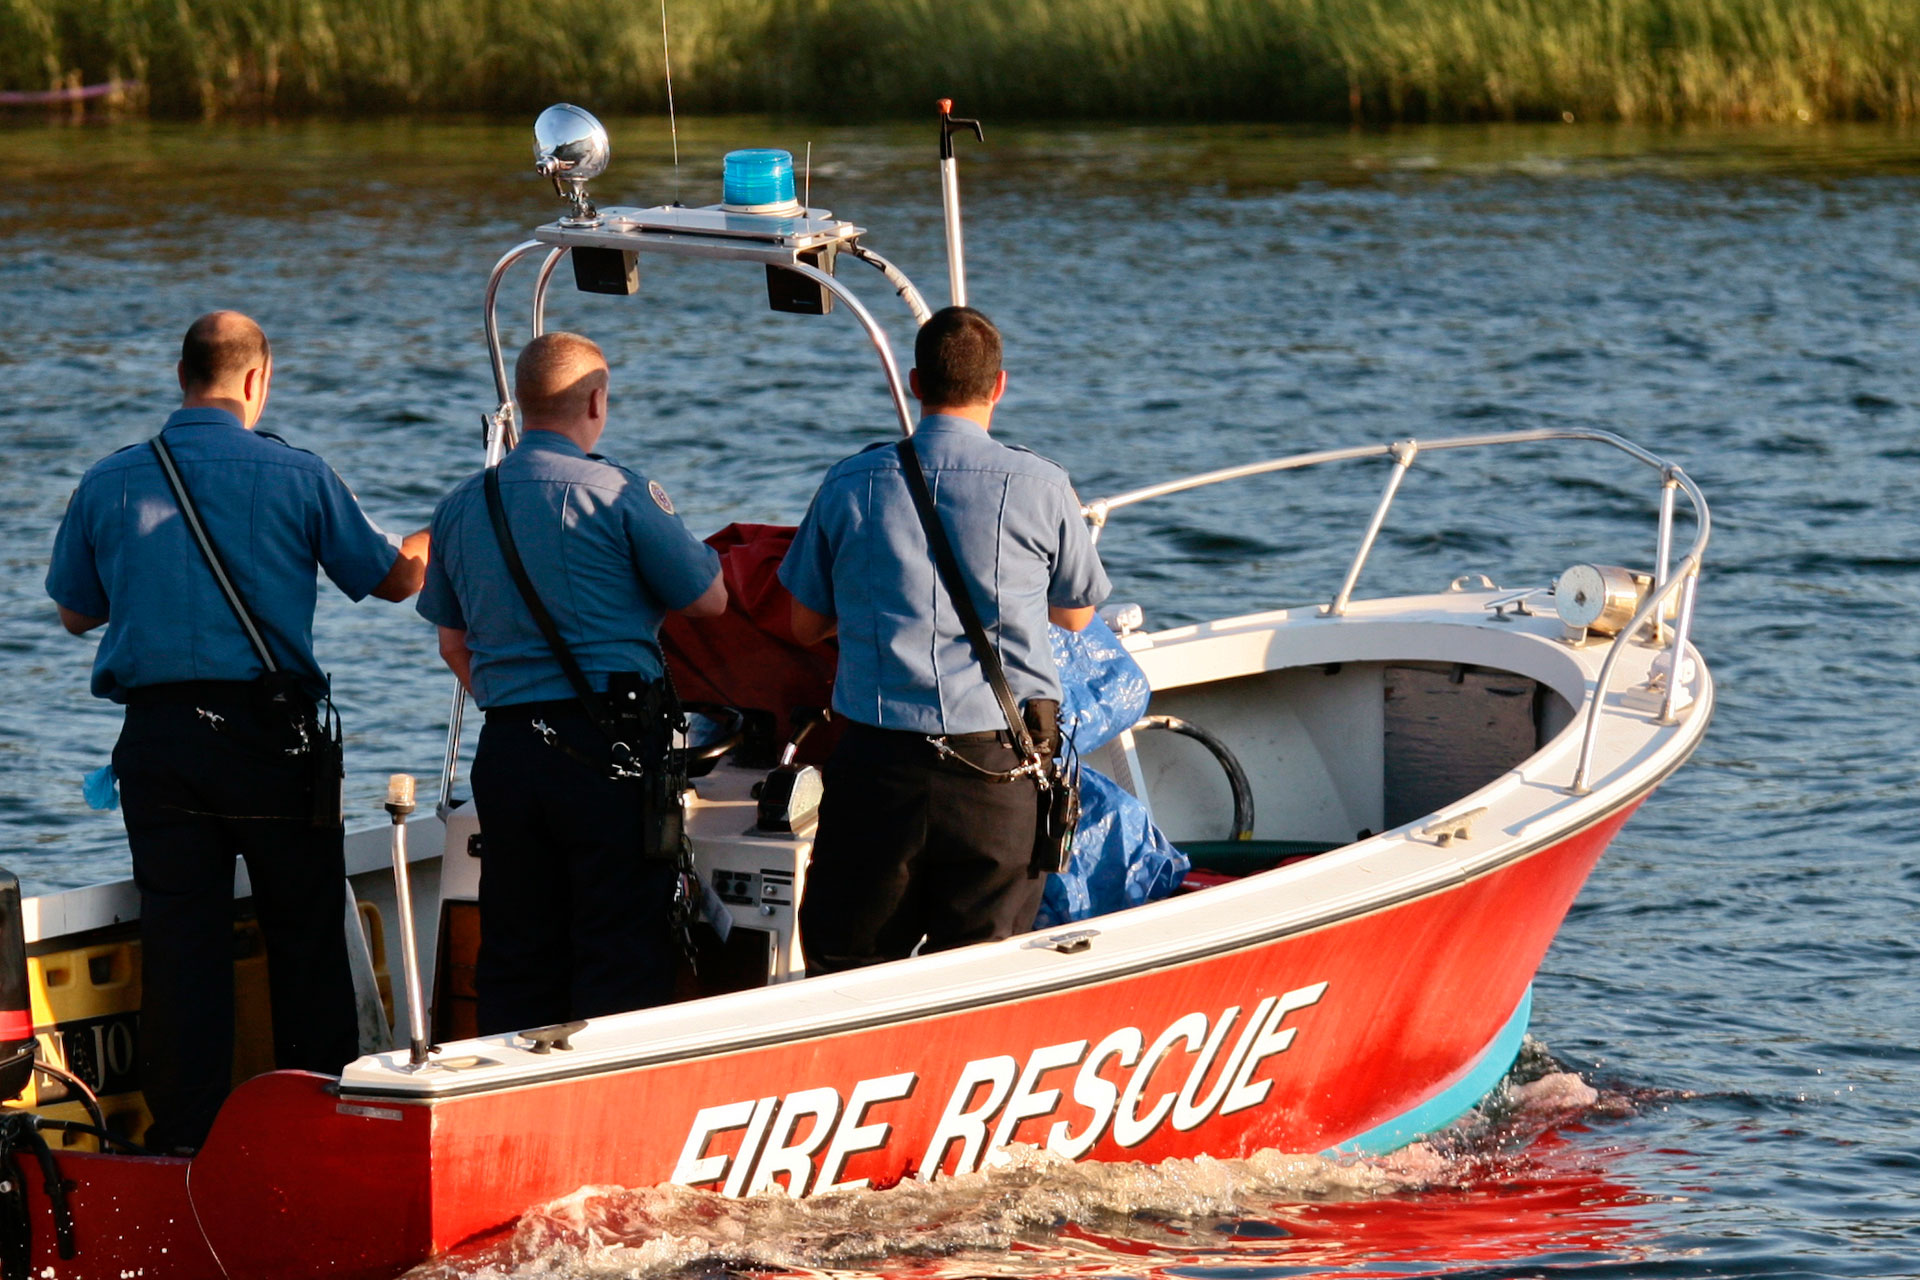 Recreational Boating Injuries and Drownings